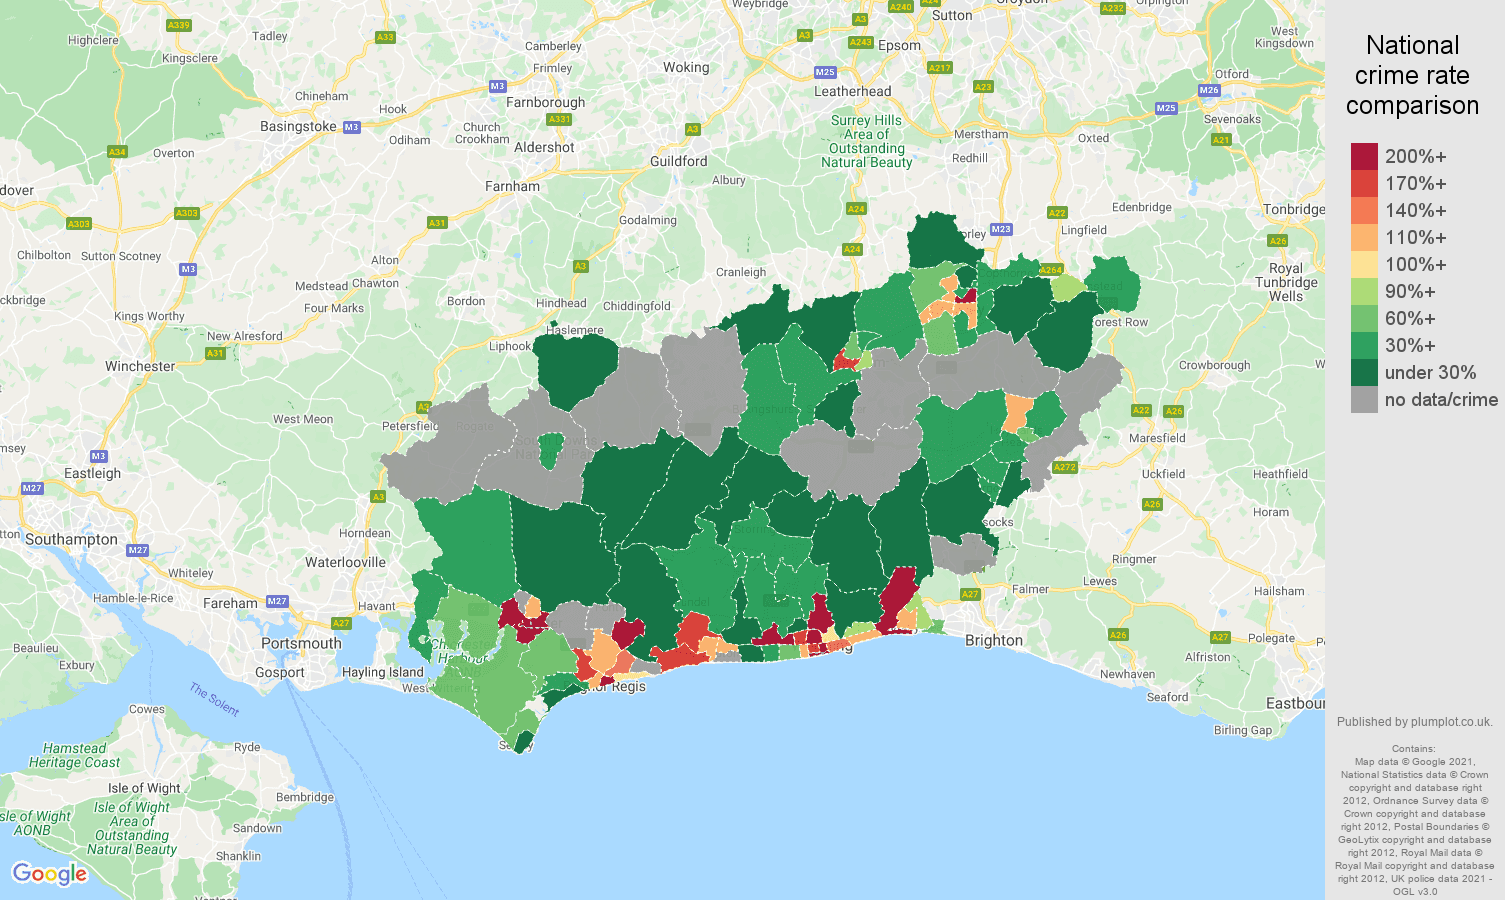 West Sussex bicycle theft crime rate comparison map